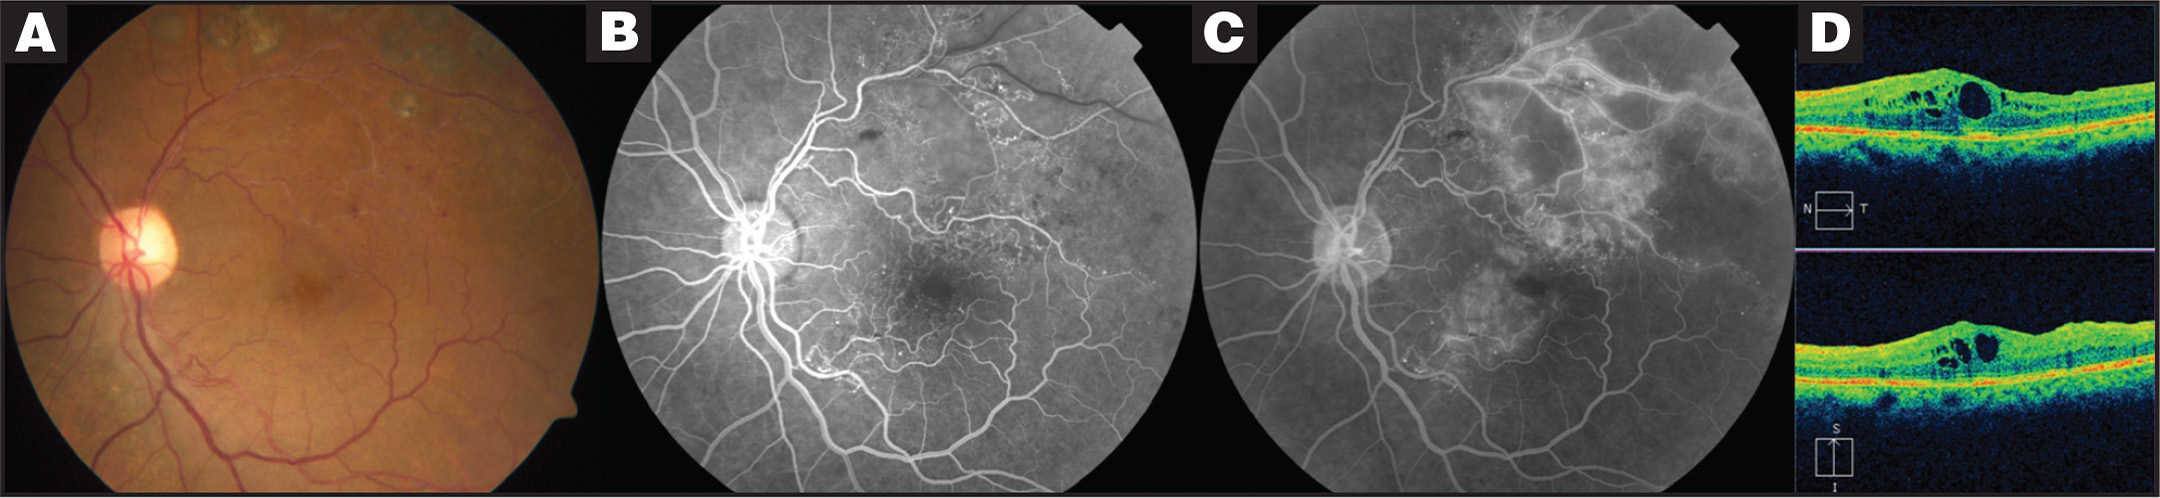 Imaging Areas Of Retinal Nonperfusion In Ischemic Branch